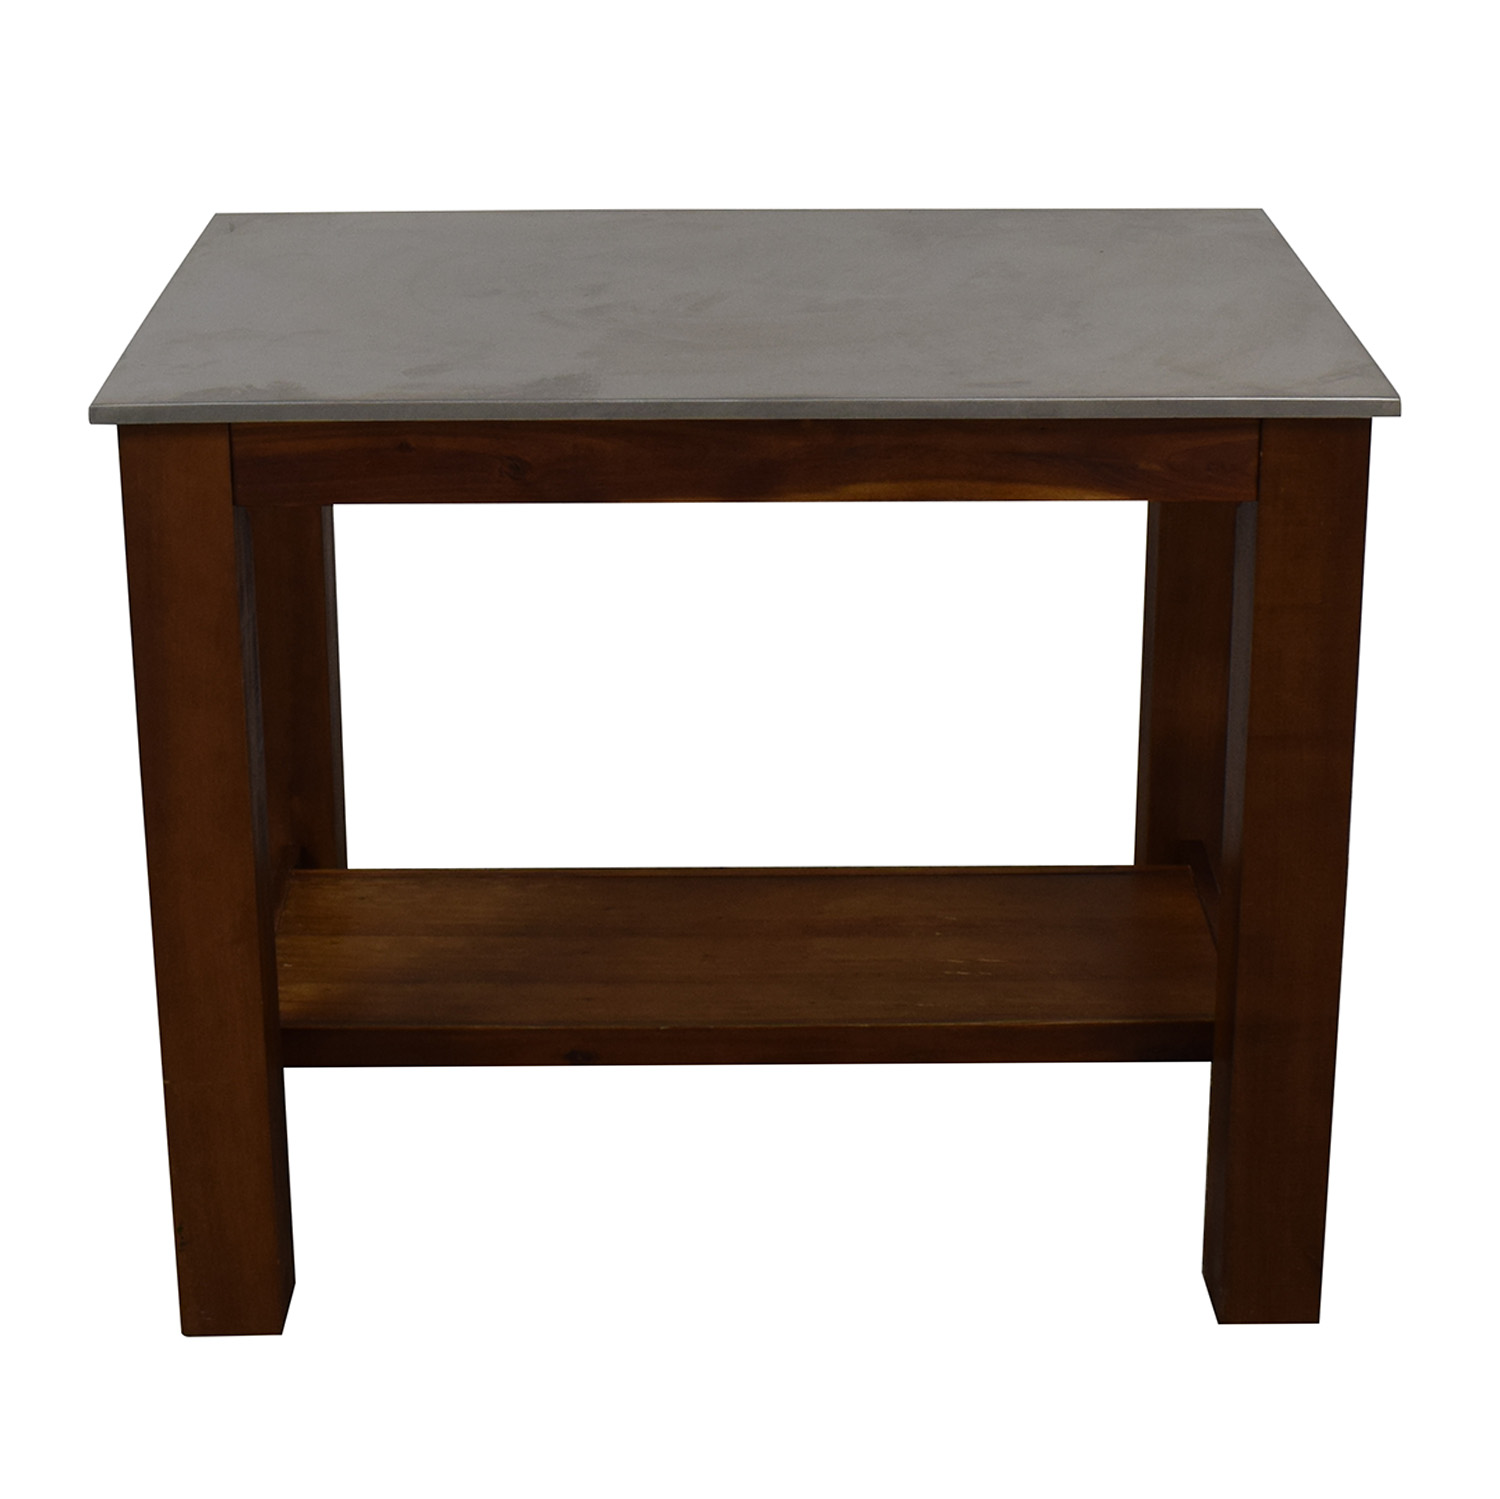 West Elm West Elm Rustic Kitchen Island Tables